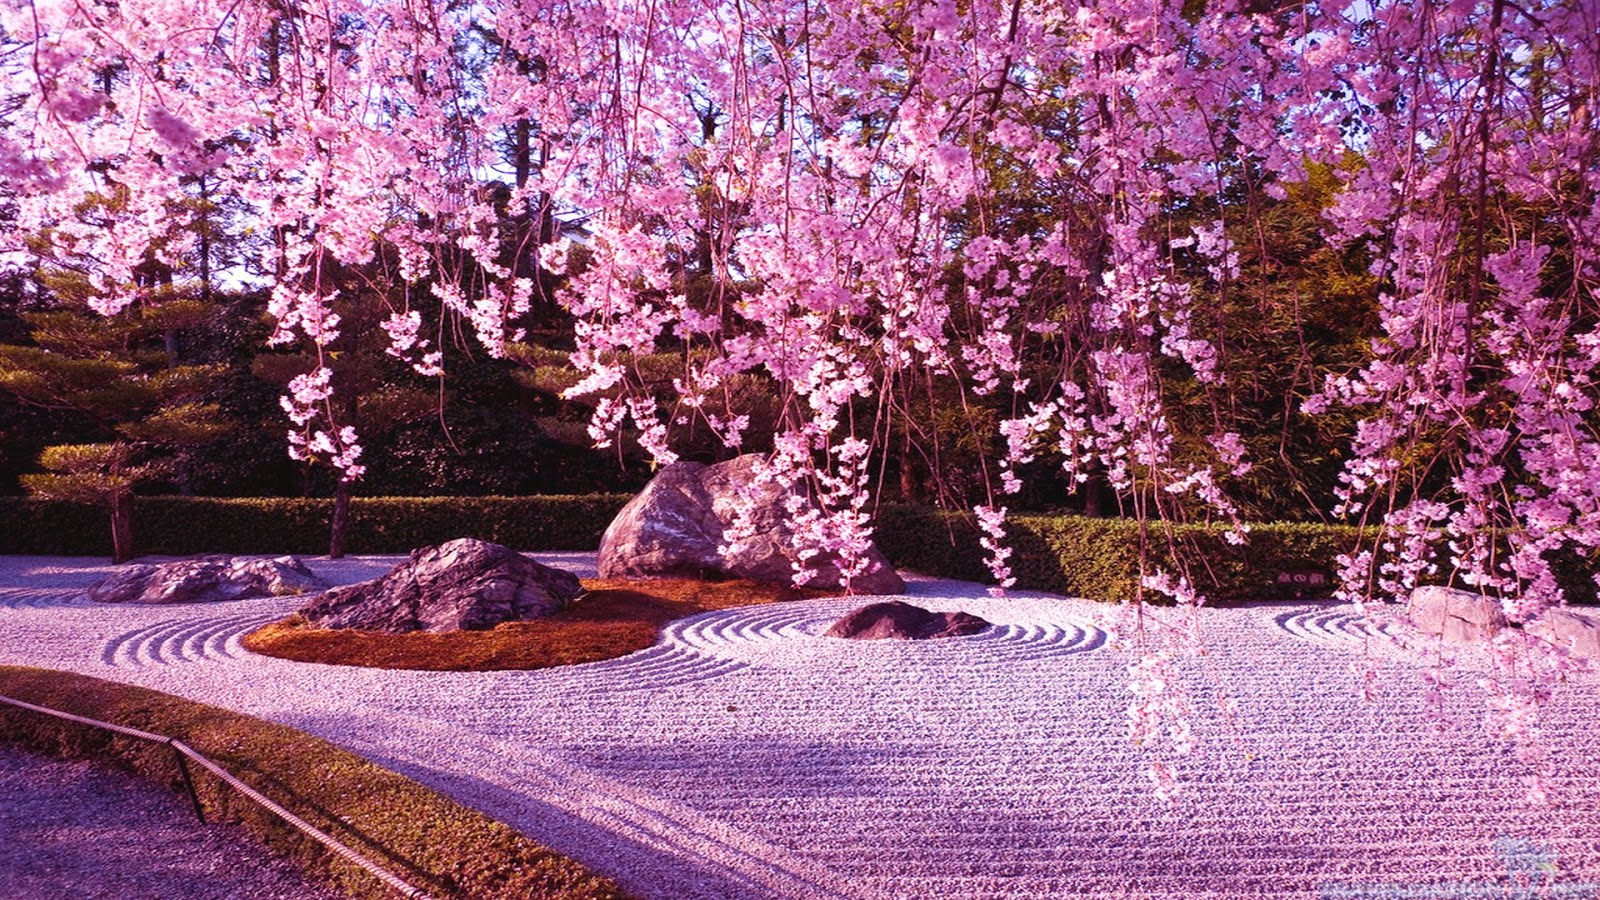 1968 in music - Wikipedia Cherry blossom tree pictures japan